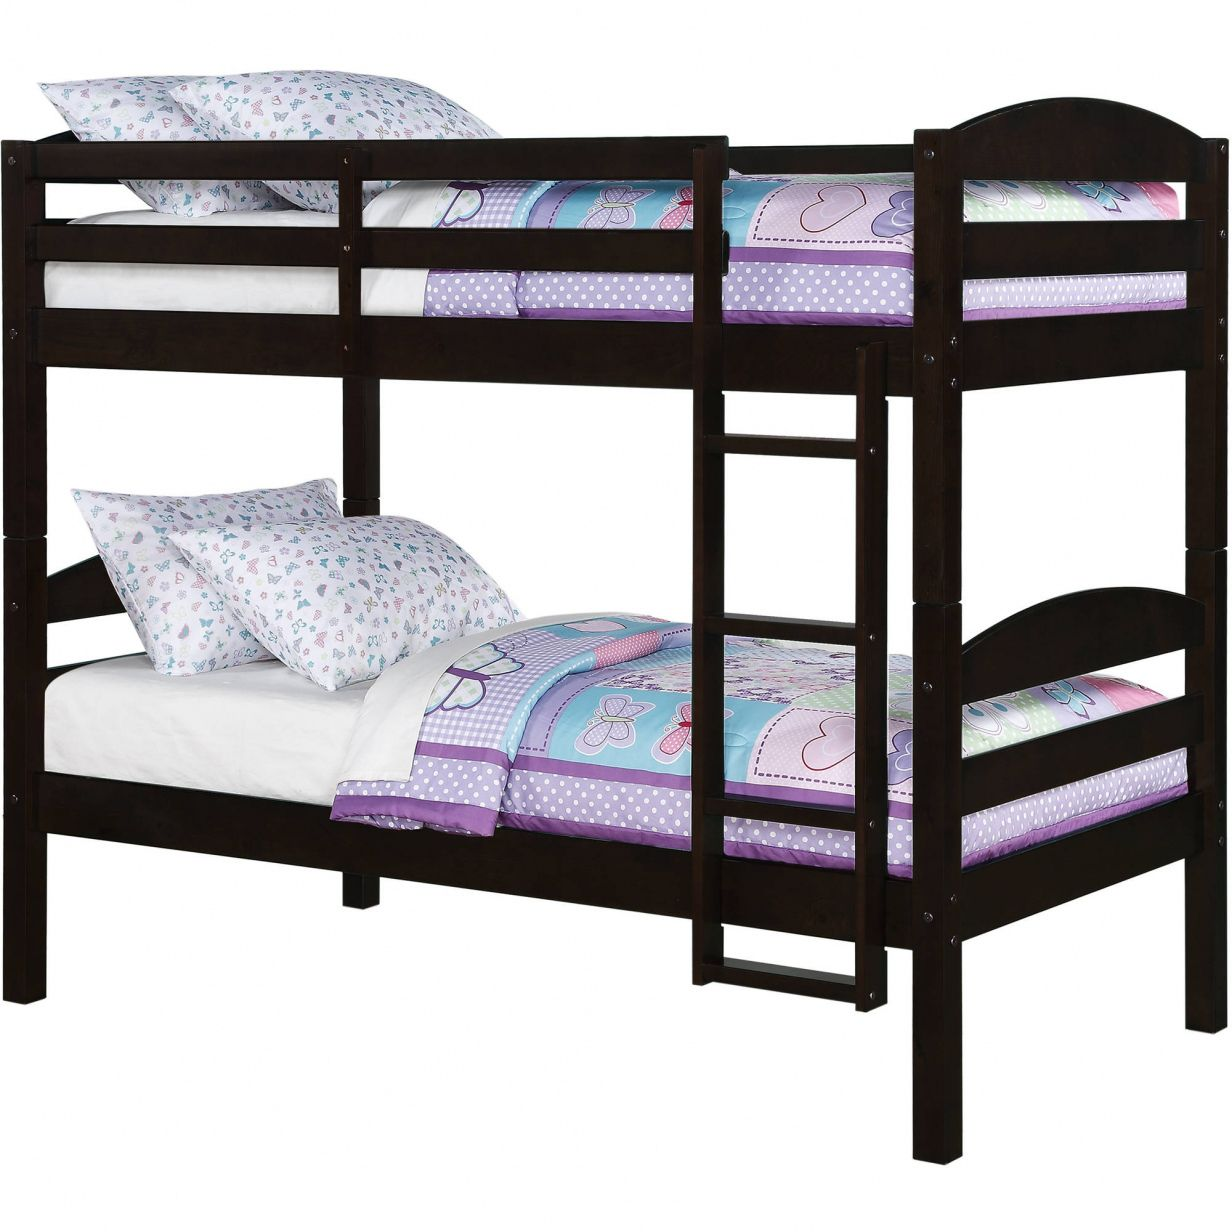 Elegant Bunk Bed With Mattress Check More At Http Dust War